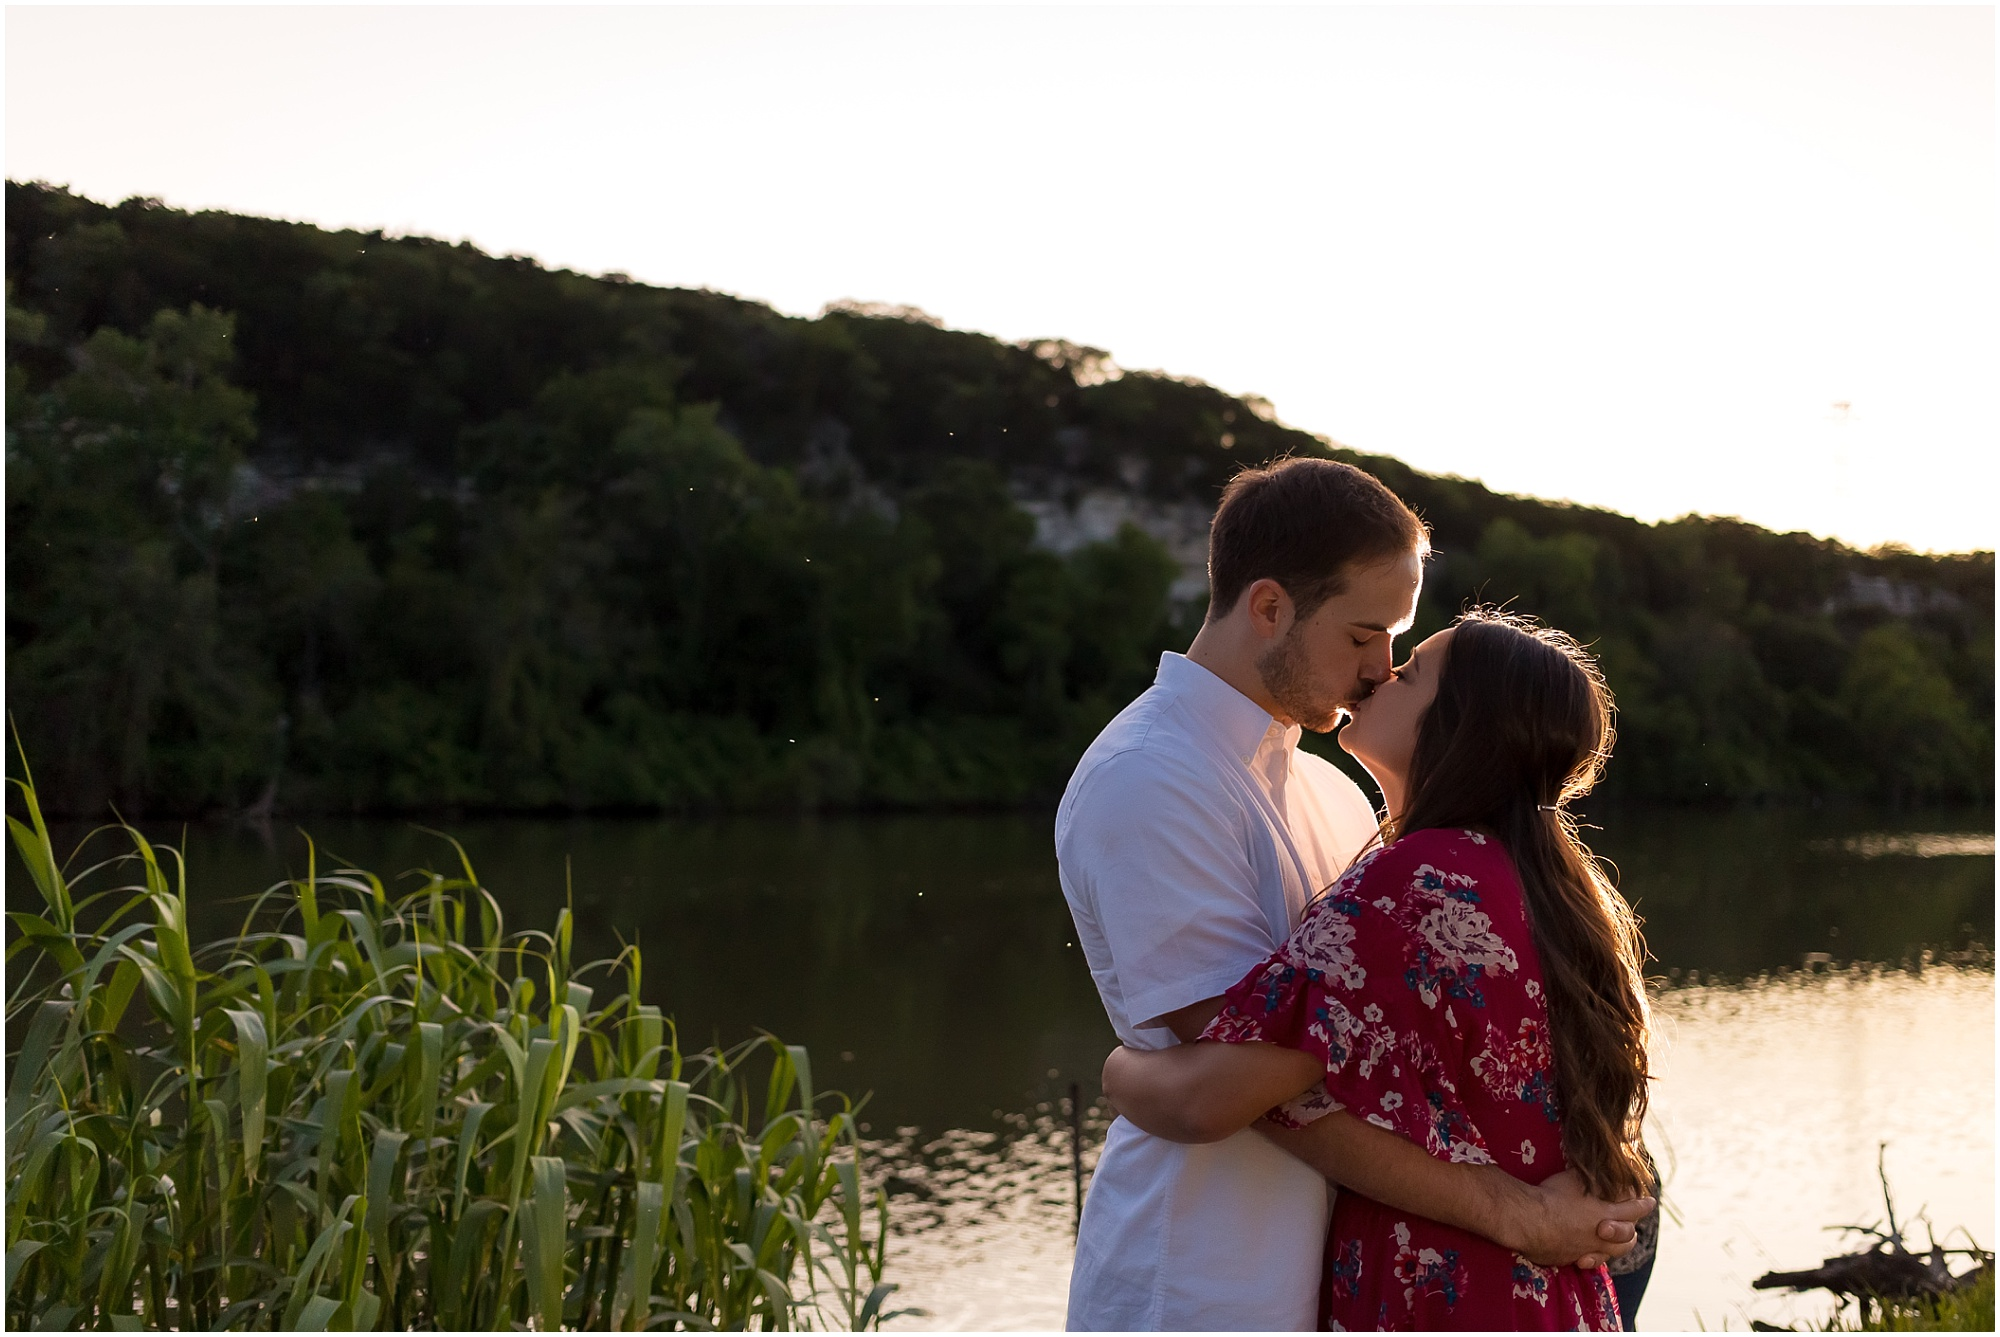 A couple kisses as the sun sets over the Bosque River during their engagement session - Waco, Texas - Jason & Melaina Photography - www.jasonandmelaina.com